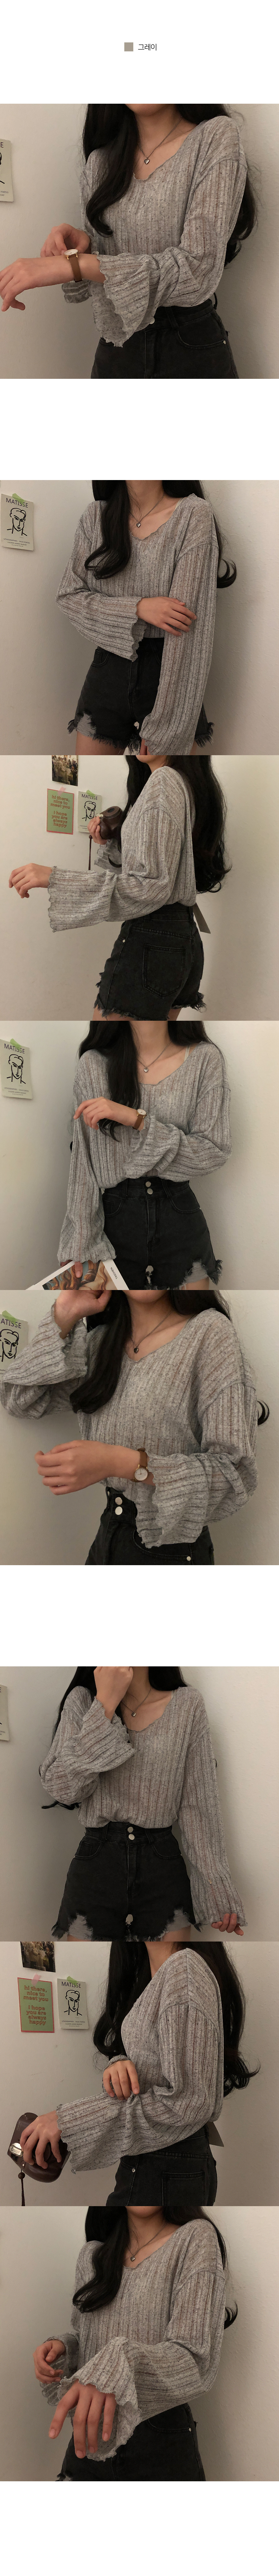 May Wave Linen Knitwear T-Shirt Protects Against Sunlight